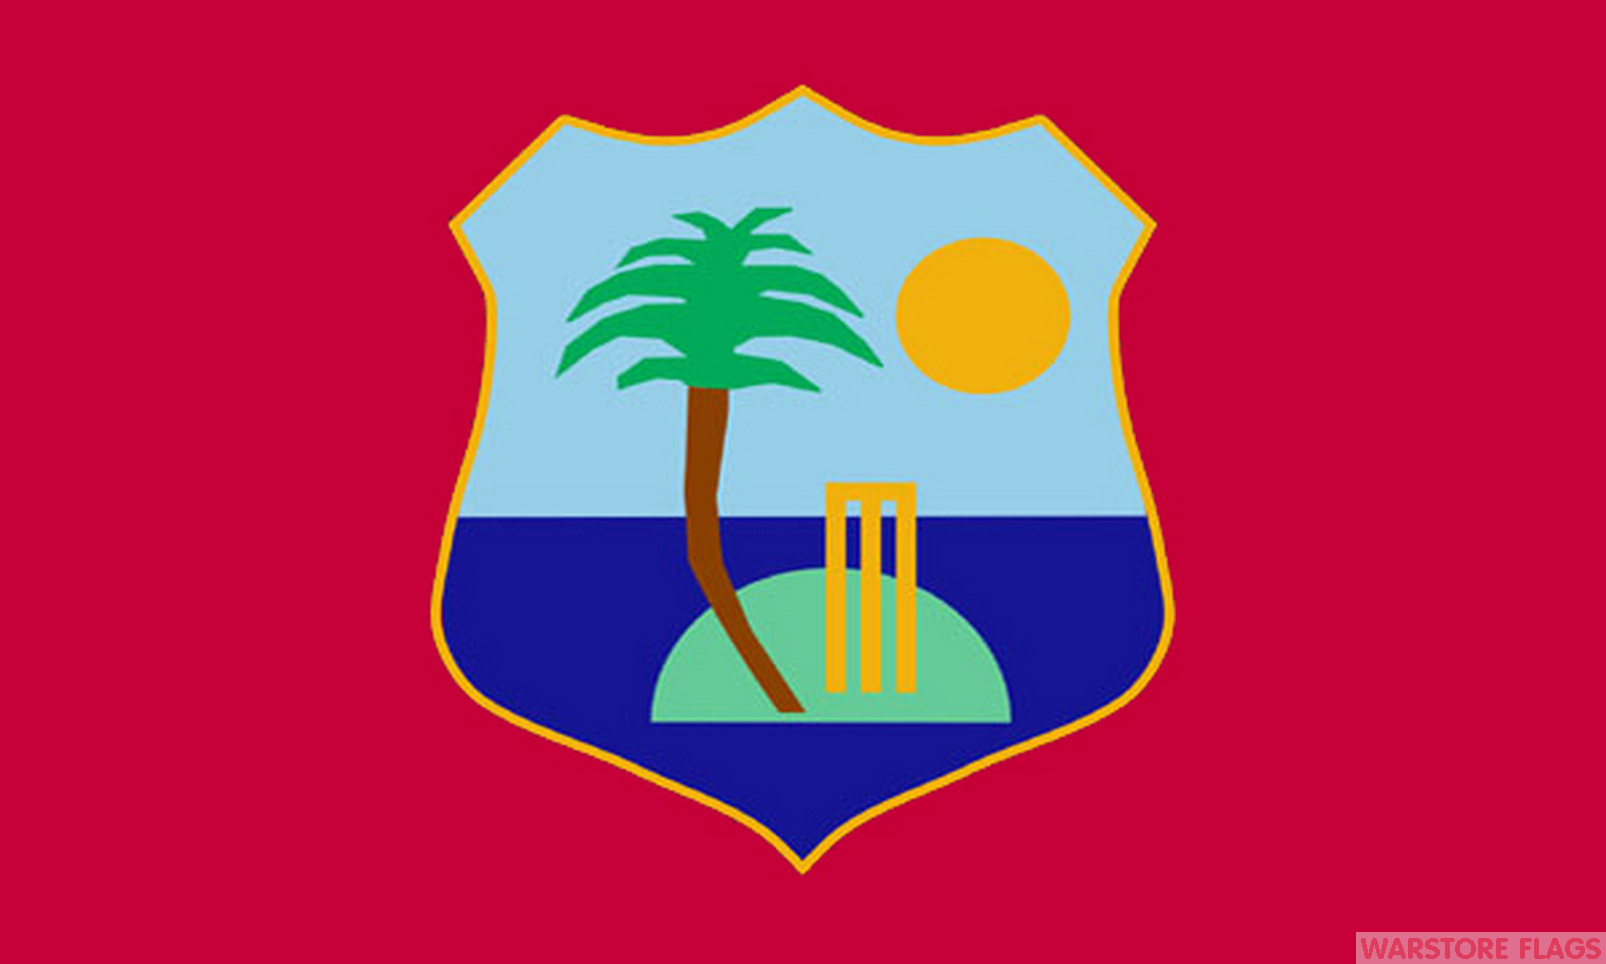 WEST INDIES FLAGS Back